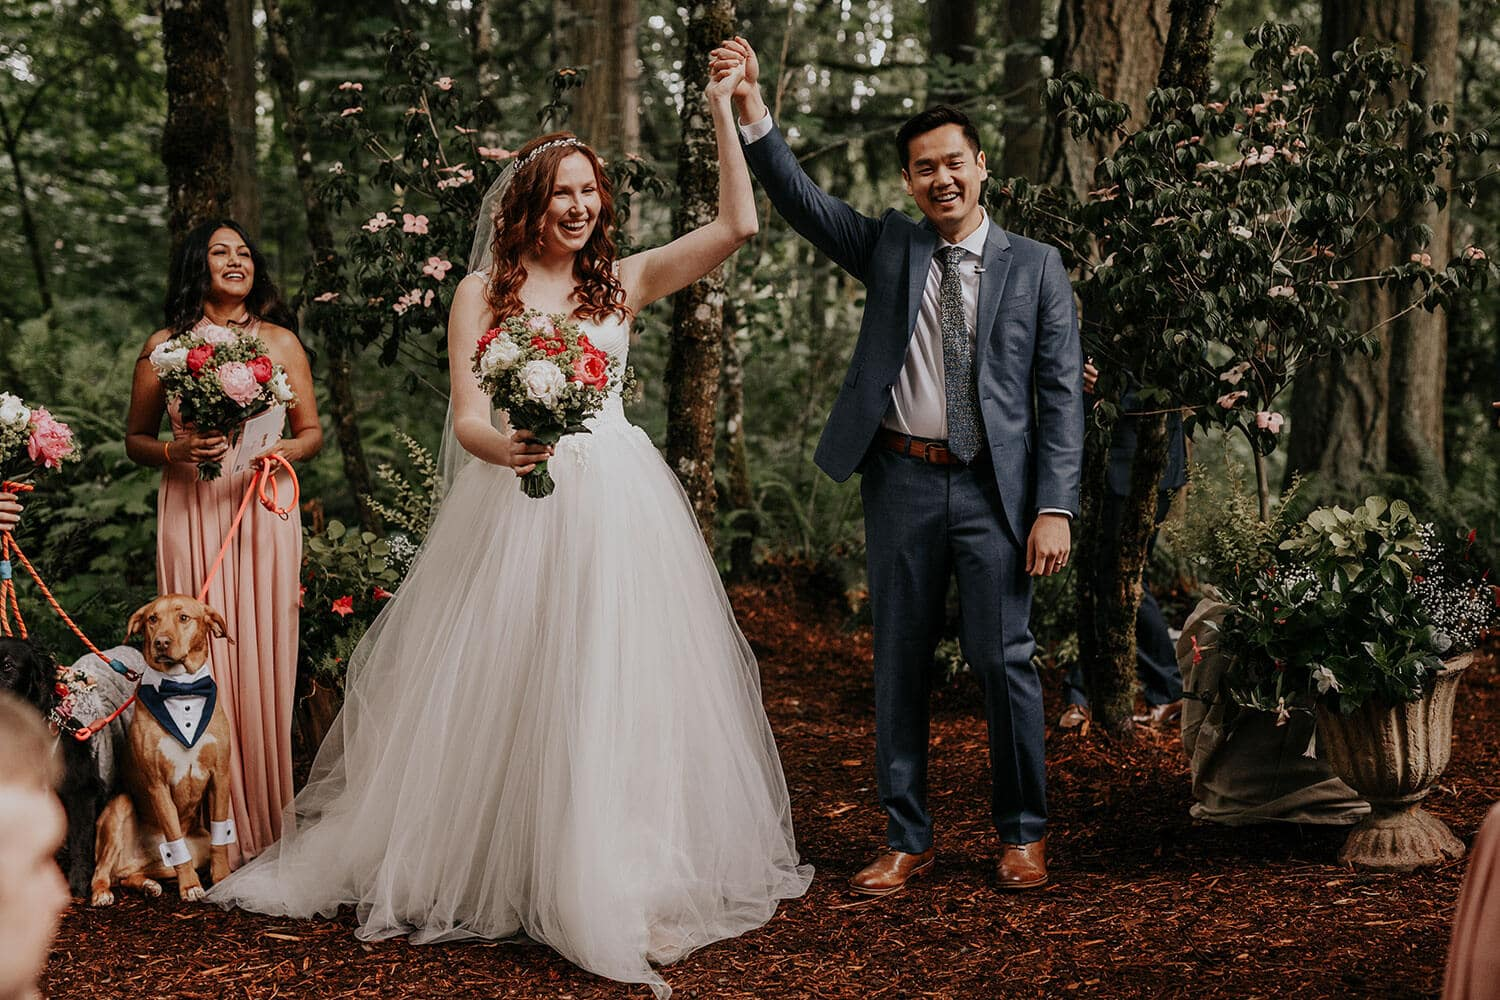 Bride and groom getting married at their own backyard in Seattle WA with their closest friends and dogs